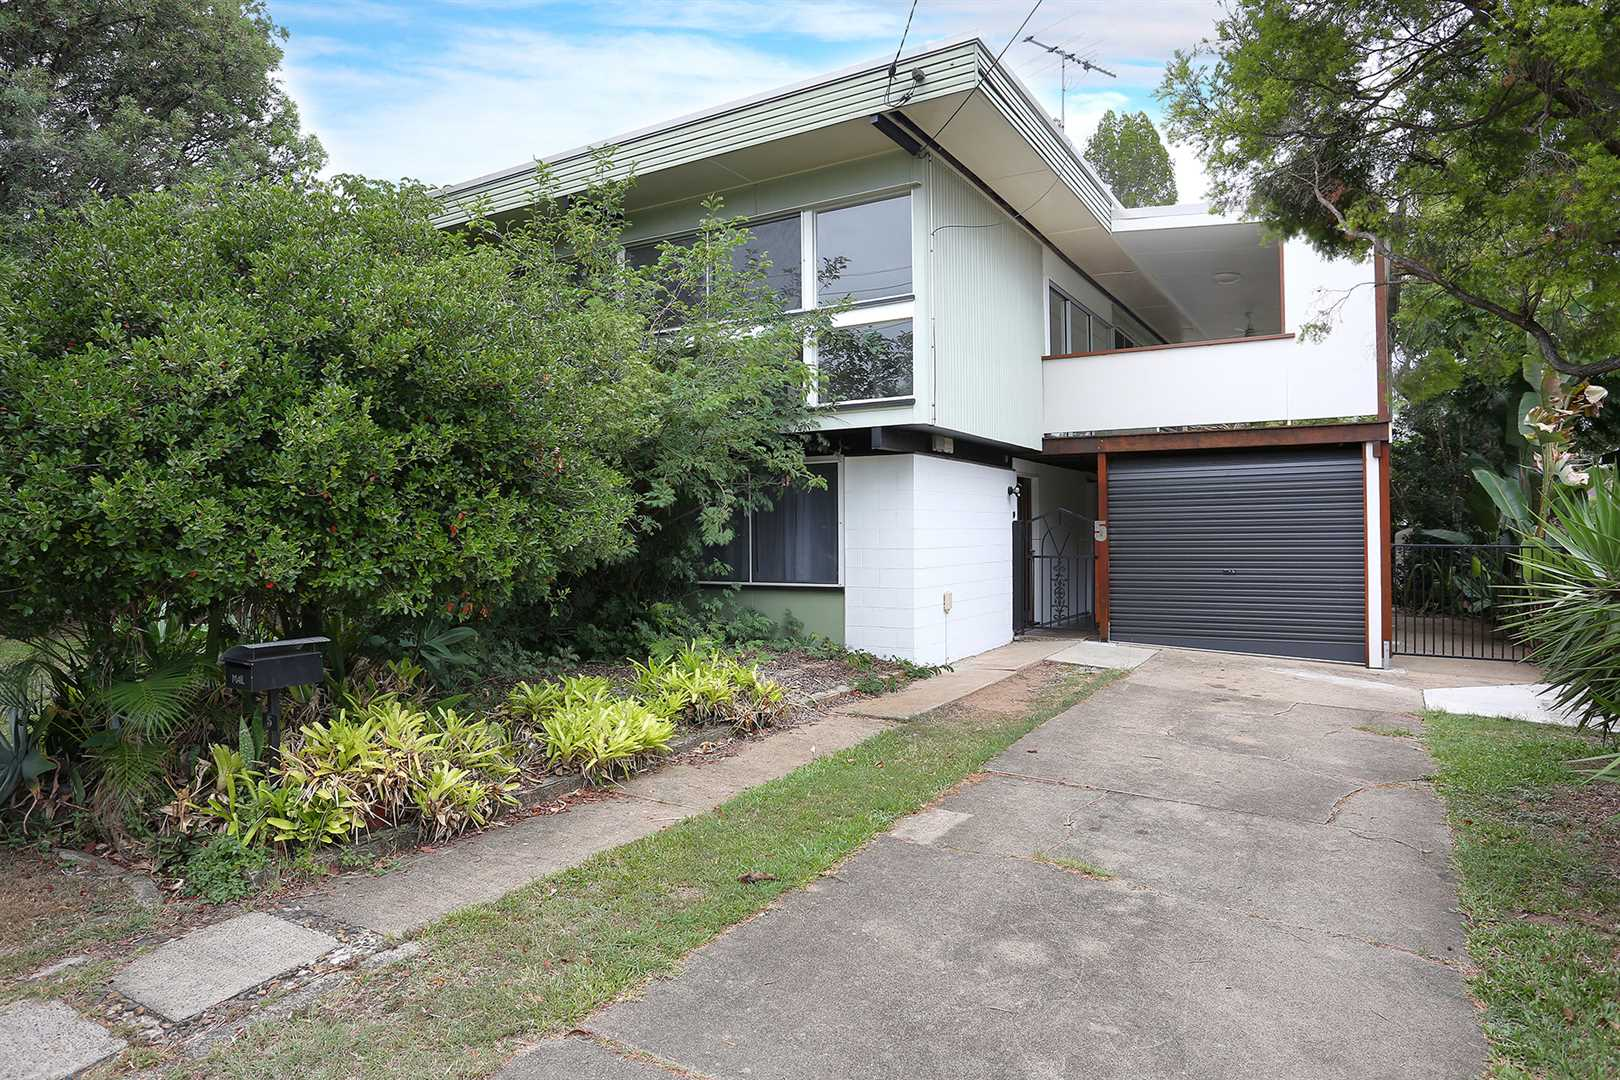 GEEBUNG - Large family home 3 bedrooms 2 living areas